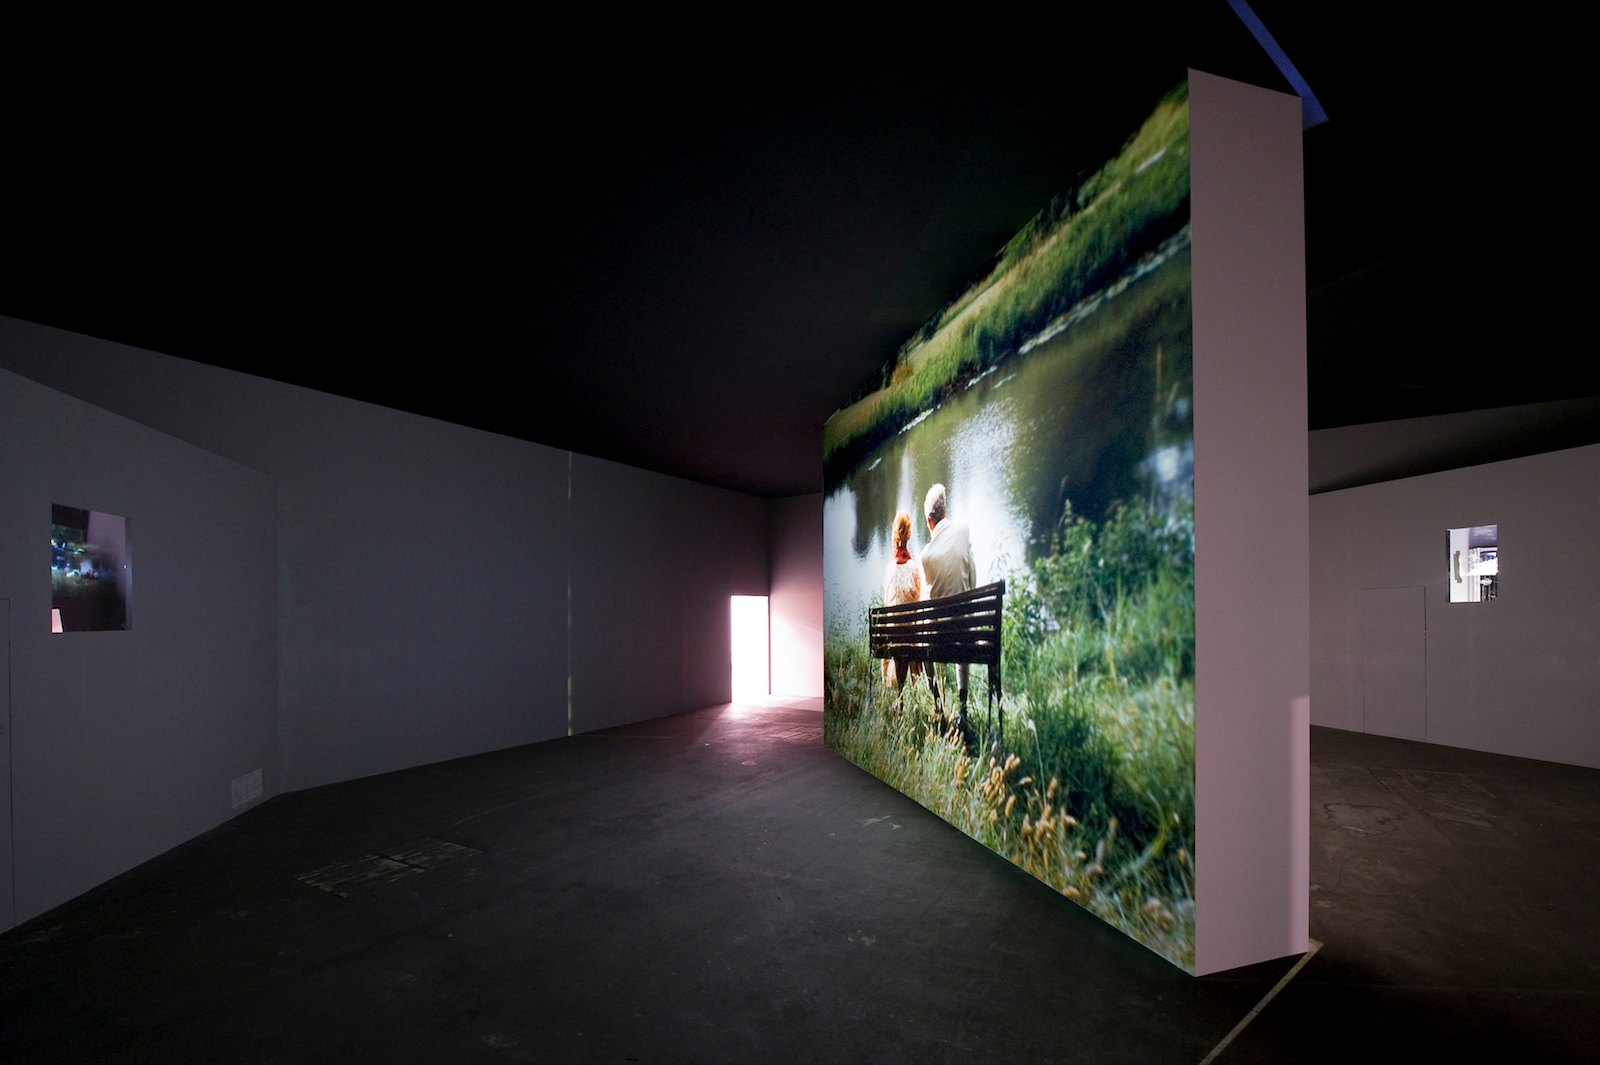 Still from Couple in the distance, 2010. Installation view Art Unlimited, Art Basel, 2010. Photo: Peter Hauck